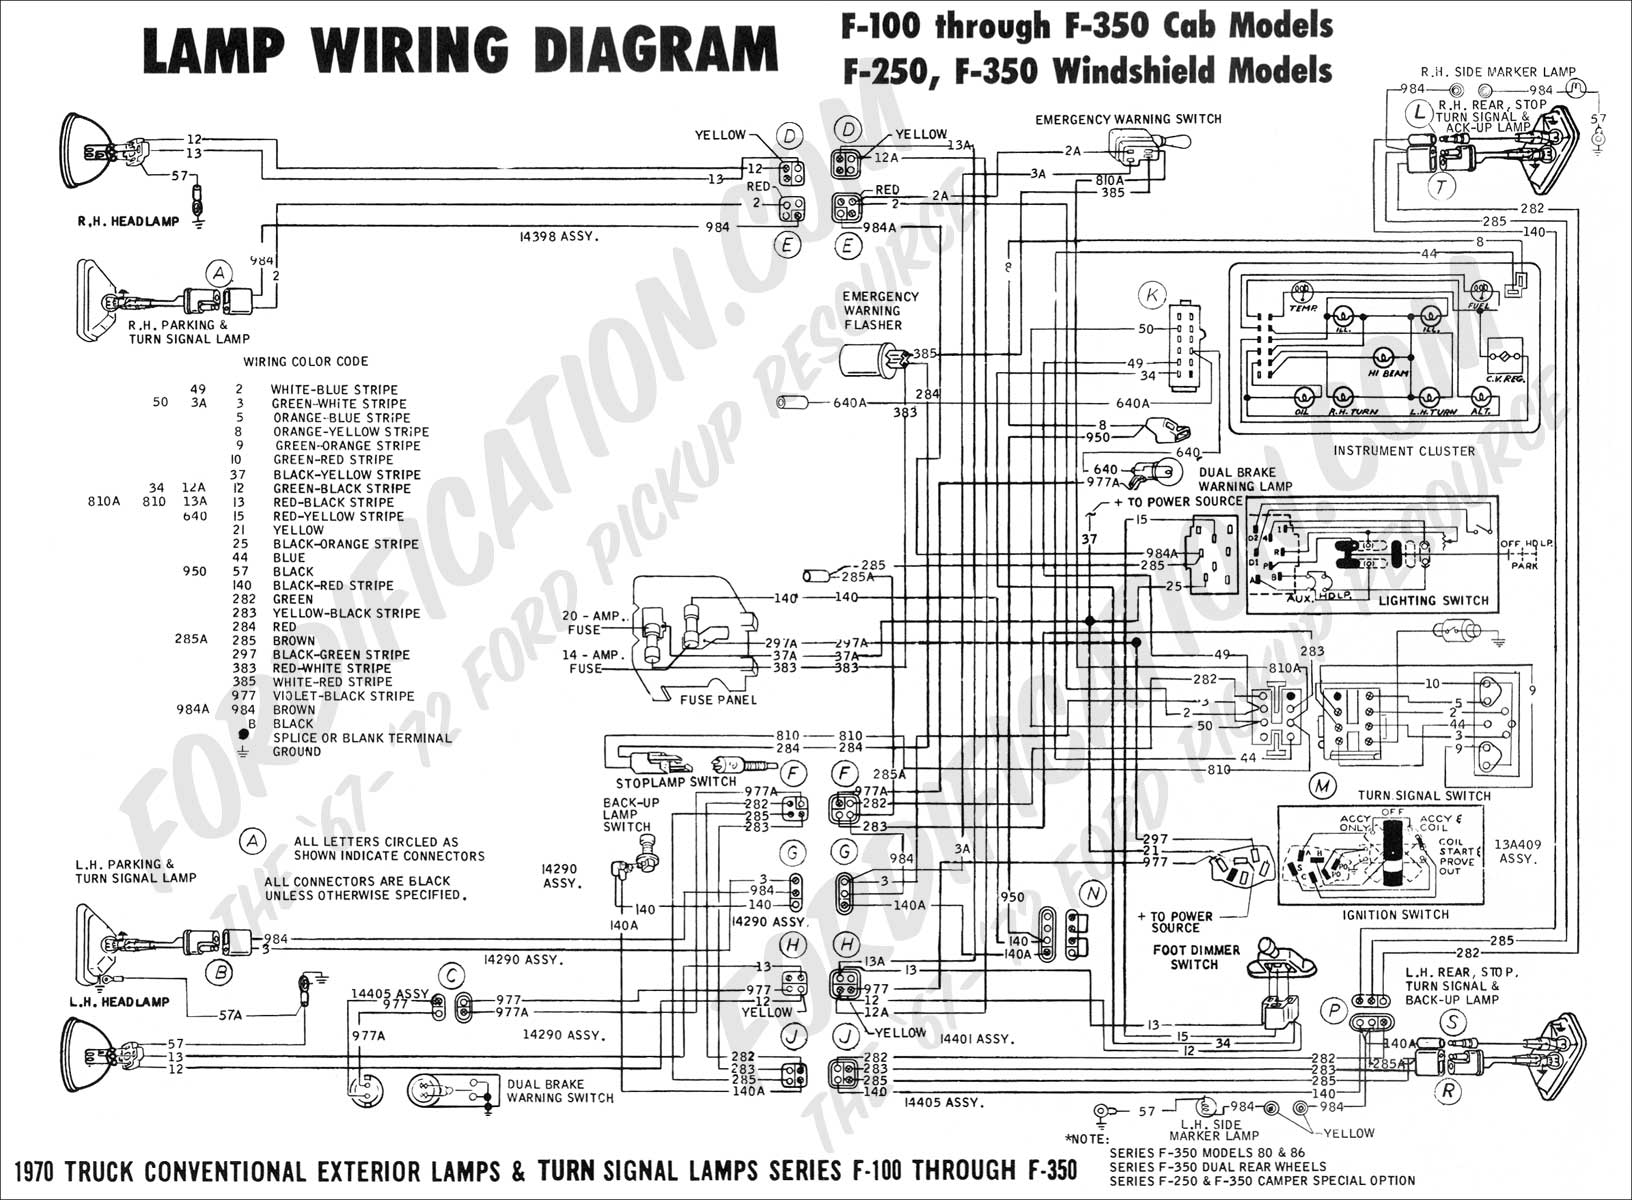 49398927138938005 as well 86975836528060451 besides Christmas Light Guide Part 2 also Can Multiple Light Wiring Diagram also 7 Pin Wire Harness. on wiring diagram for led tail light